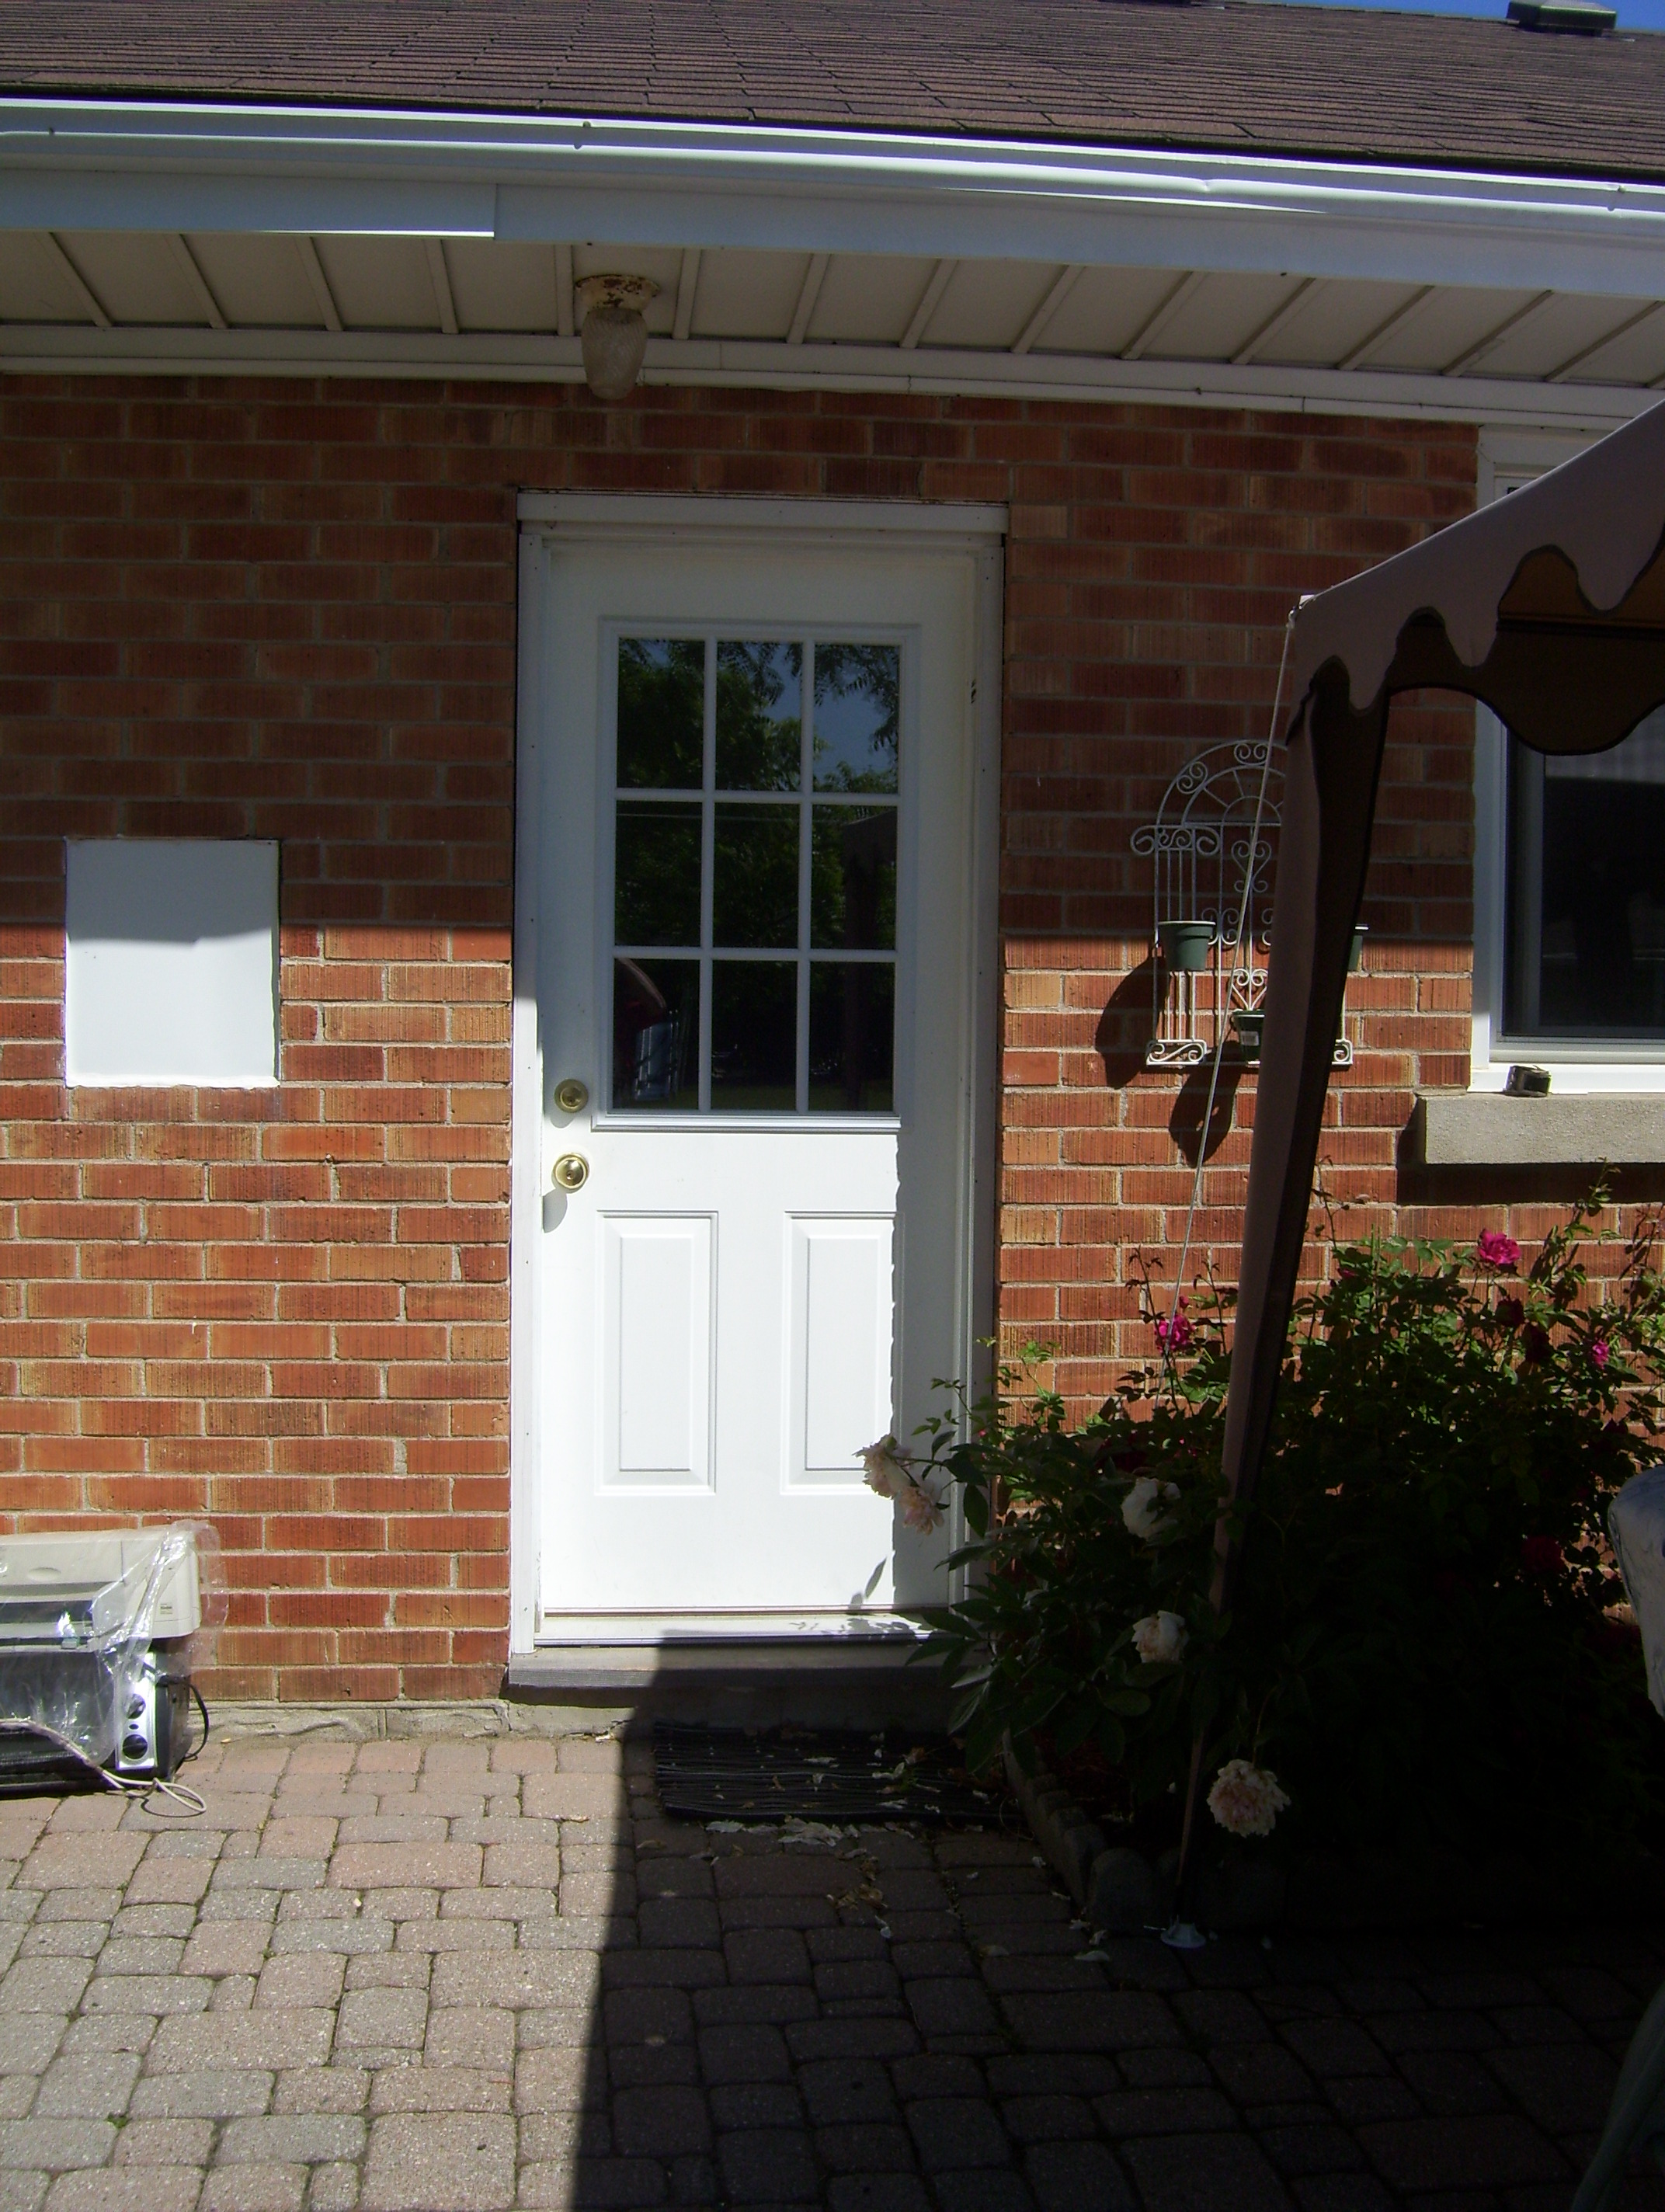 U of W Student Renters Look Here!Two bedroom student apartment - rent entire apartment or one bedroom within it! September Start